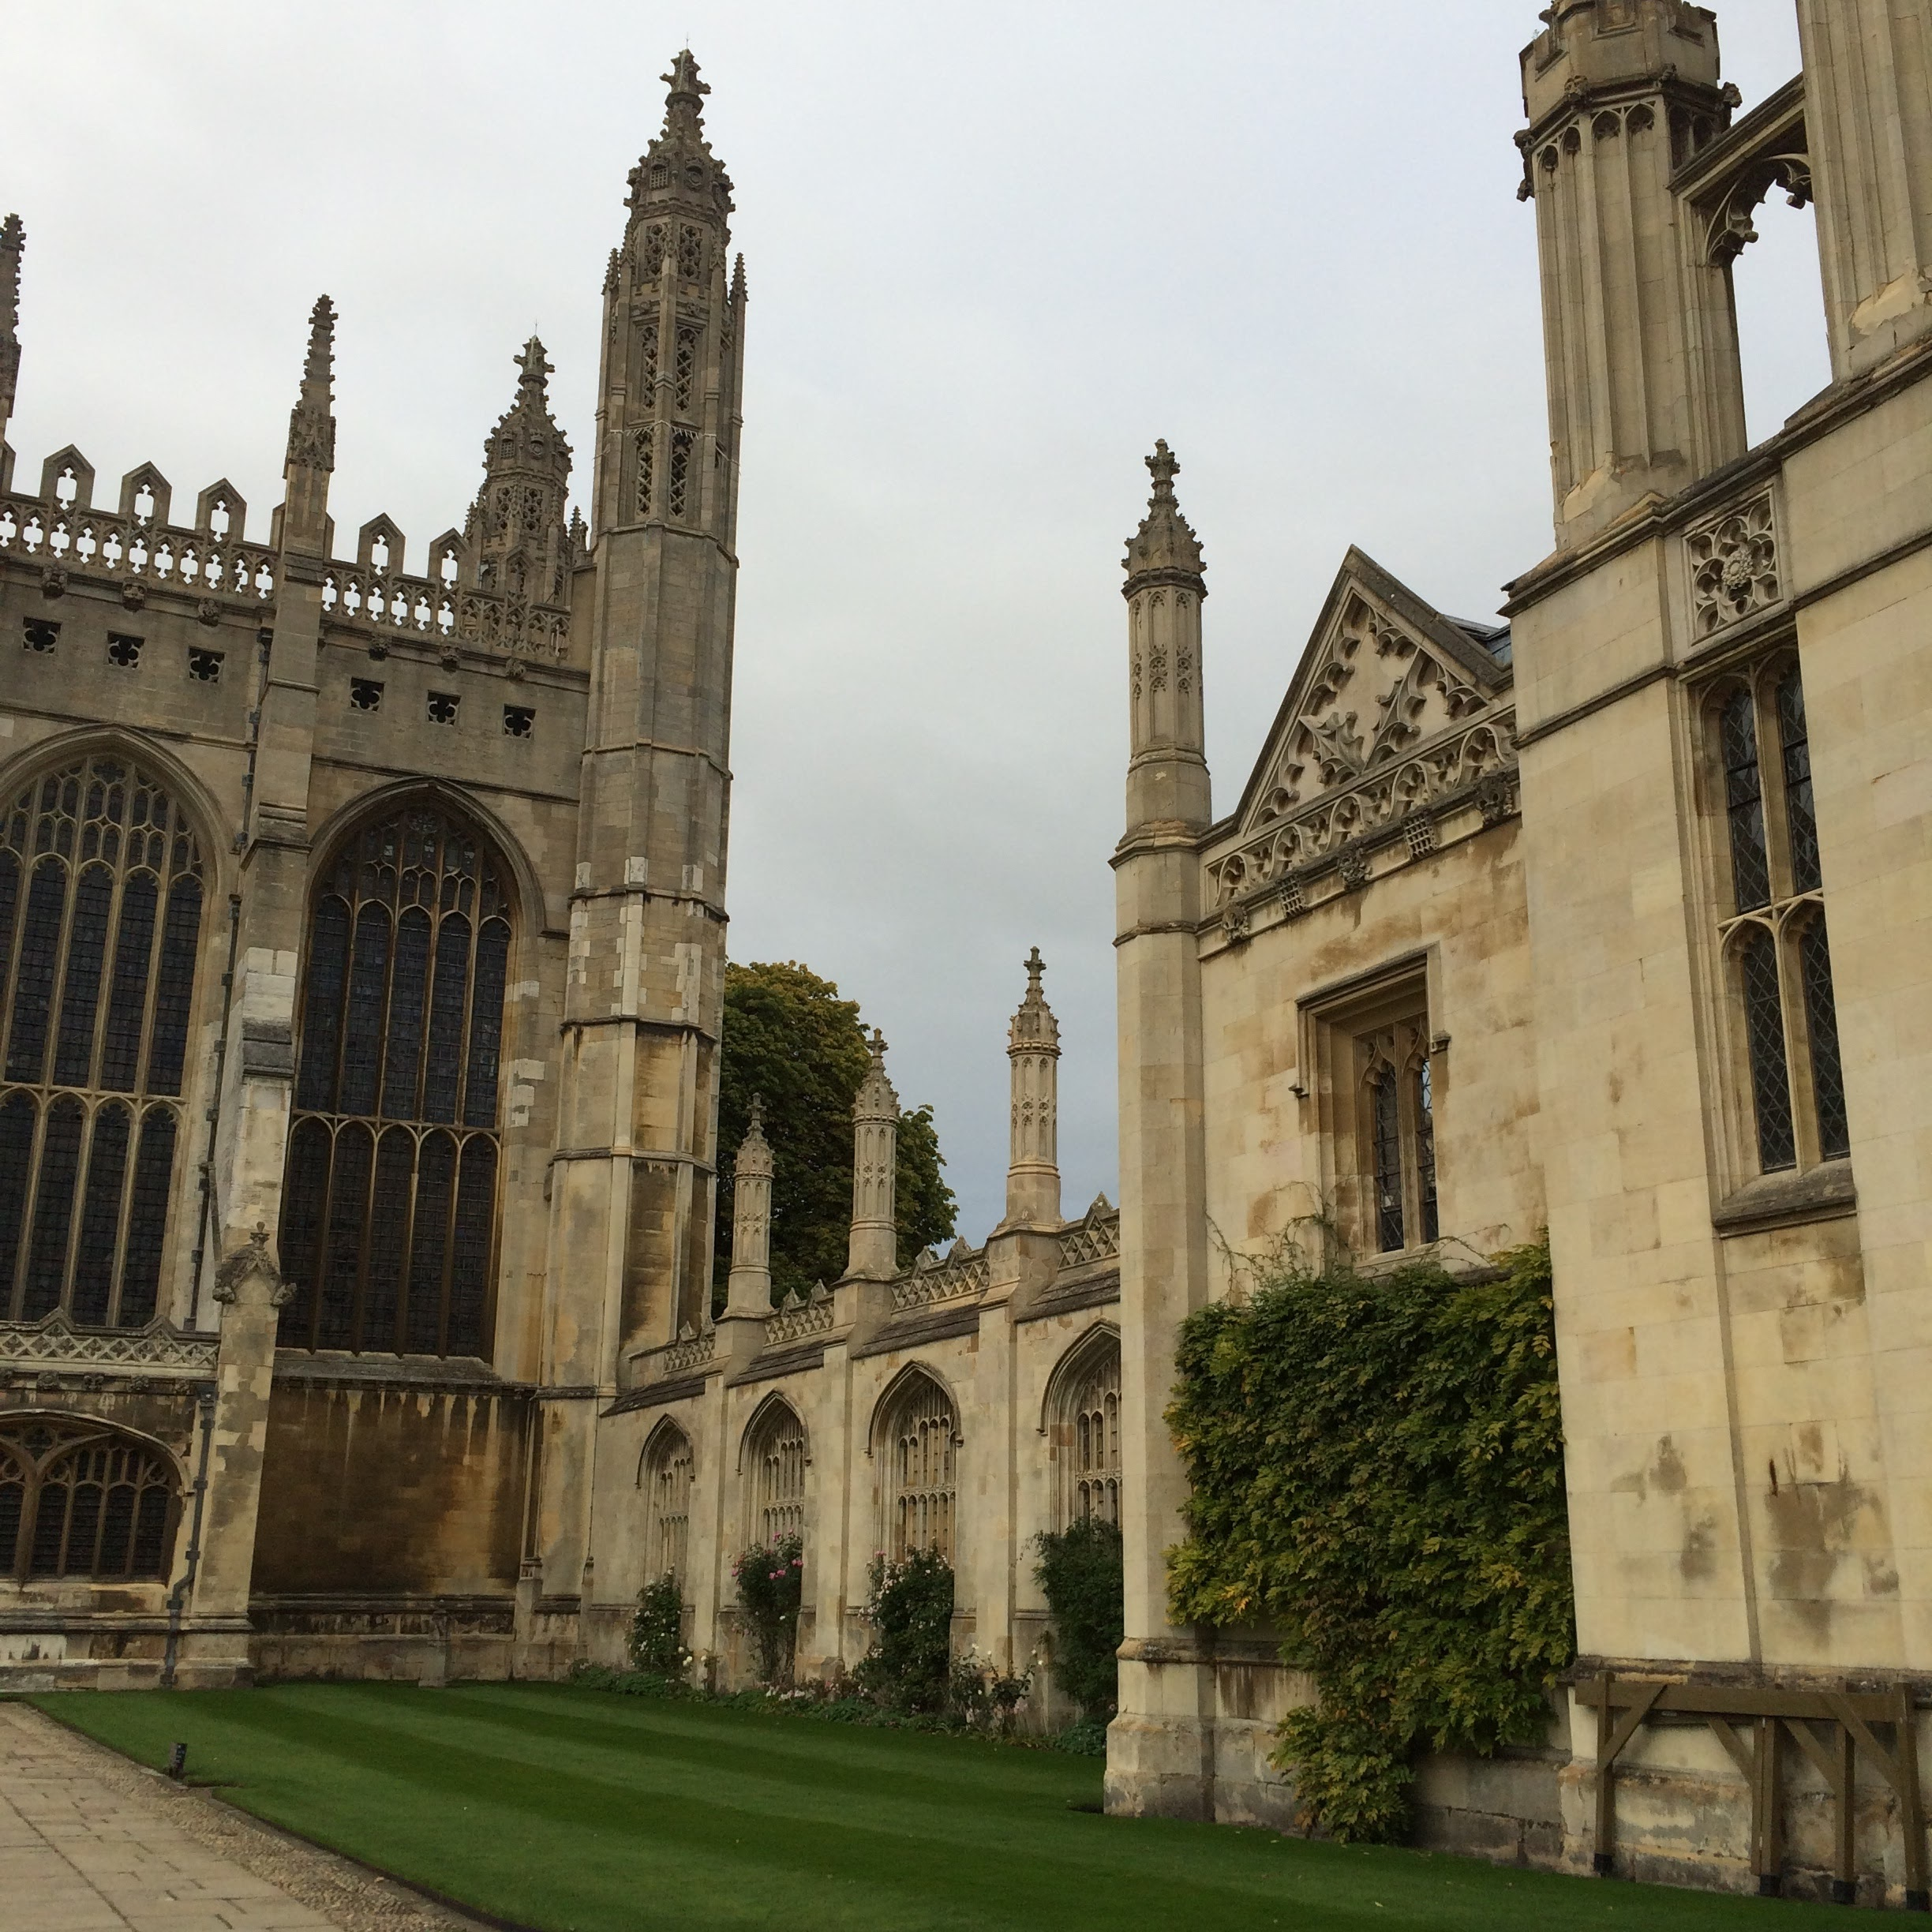 We spent a day in Cambridge, visiting Shermaine